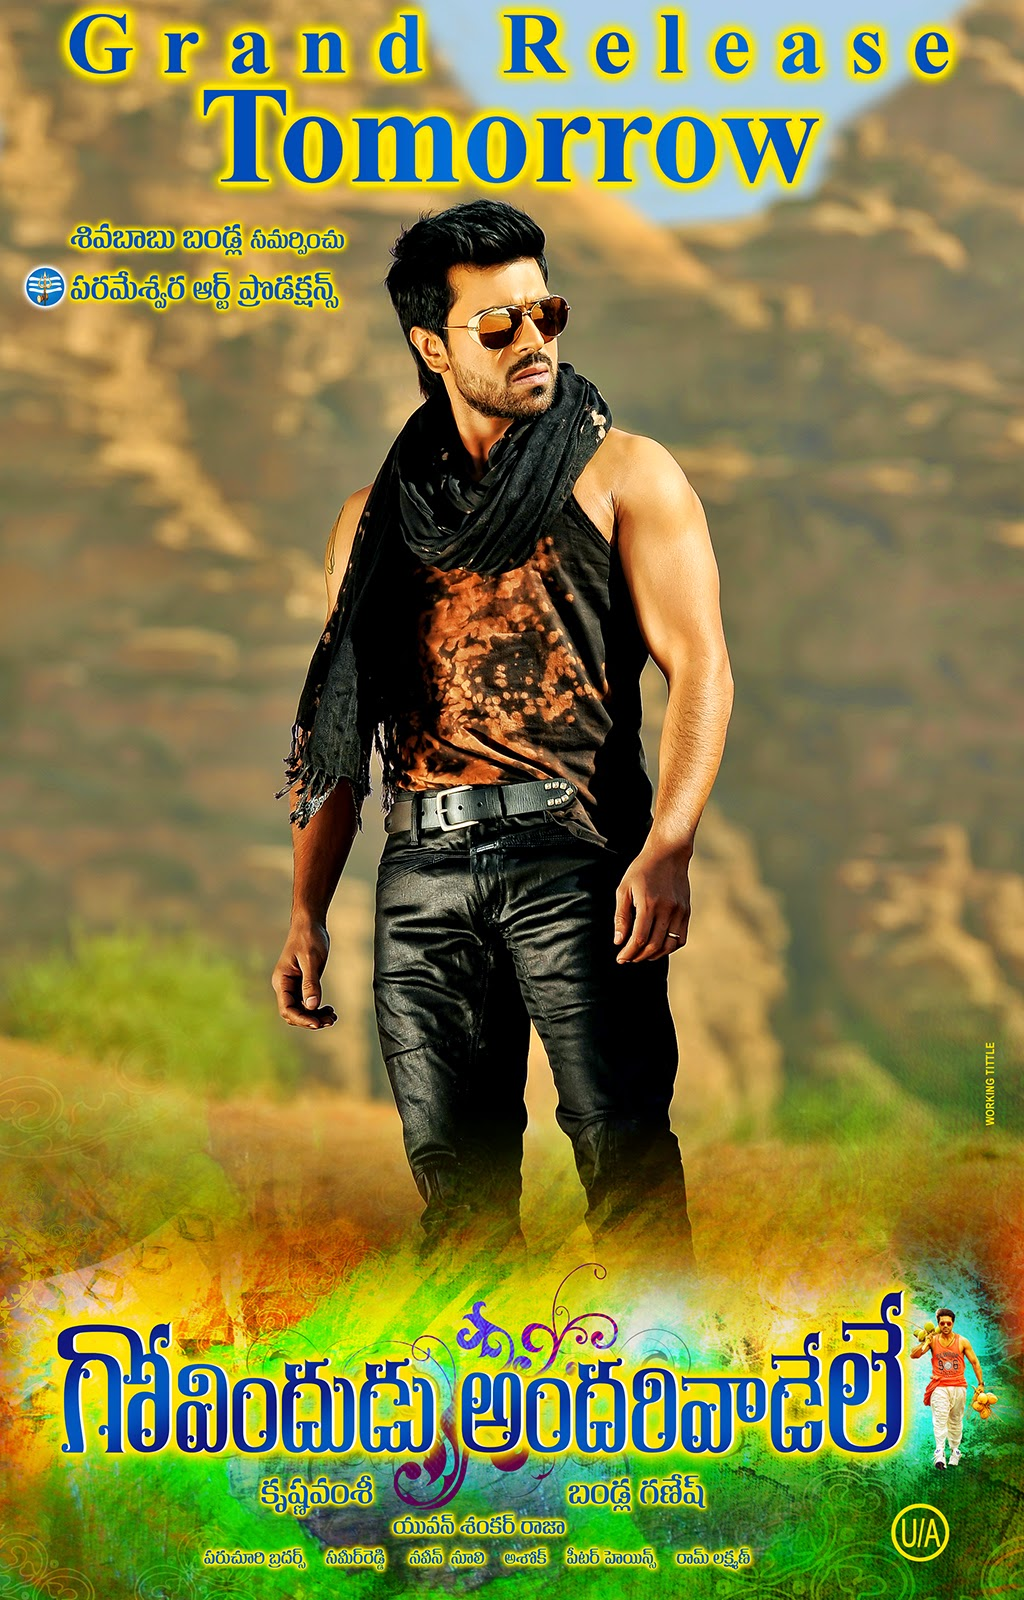 Govindudu Andari Vaadele (2021) Hindi Dubbed Movie HDRip 720p AAC